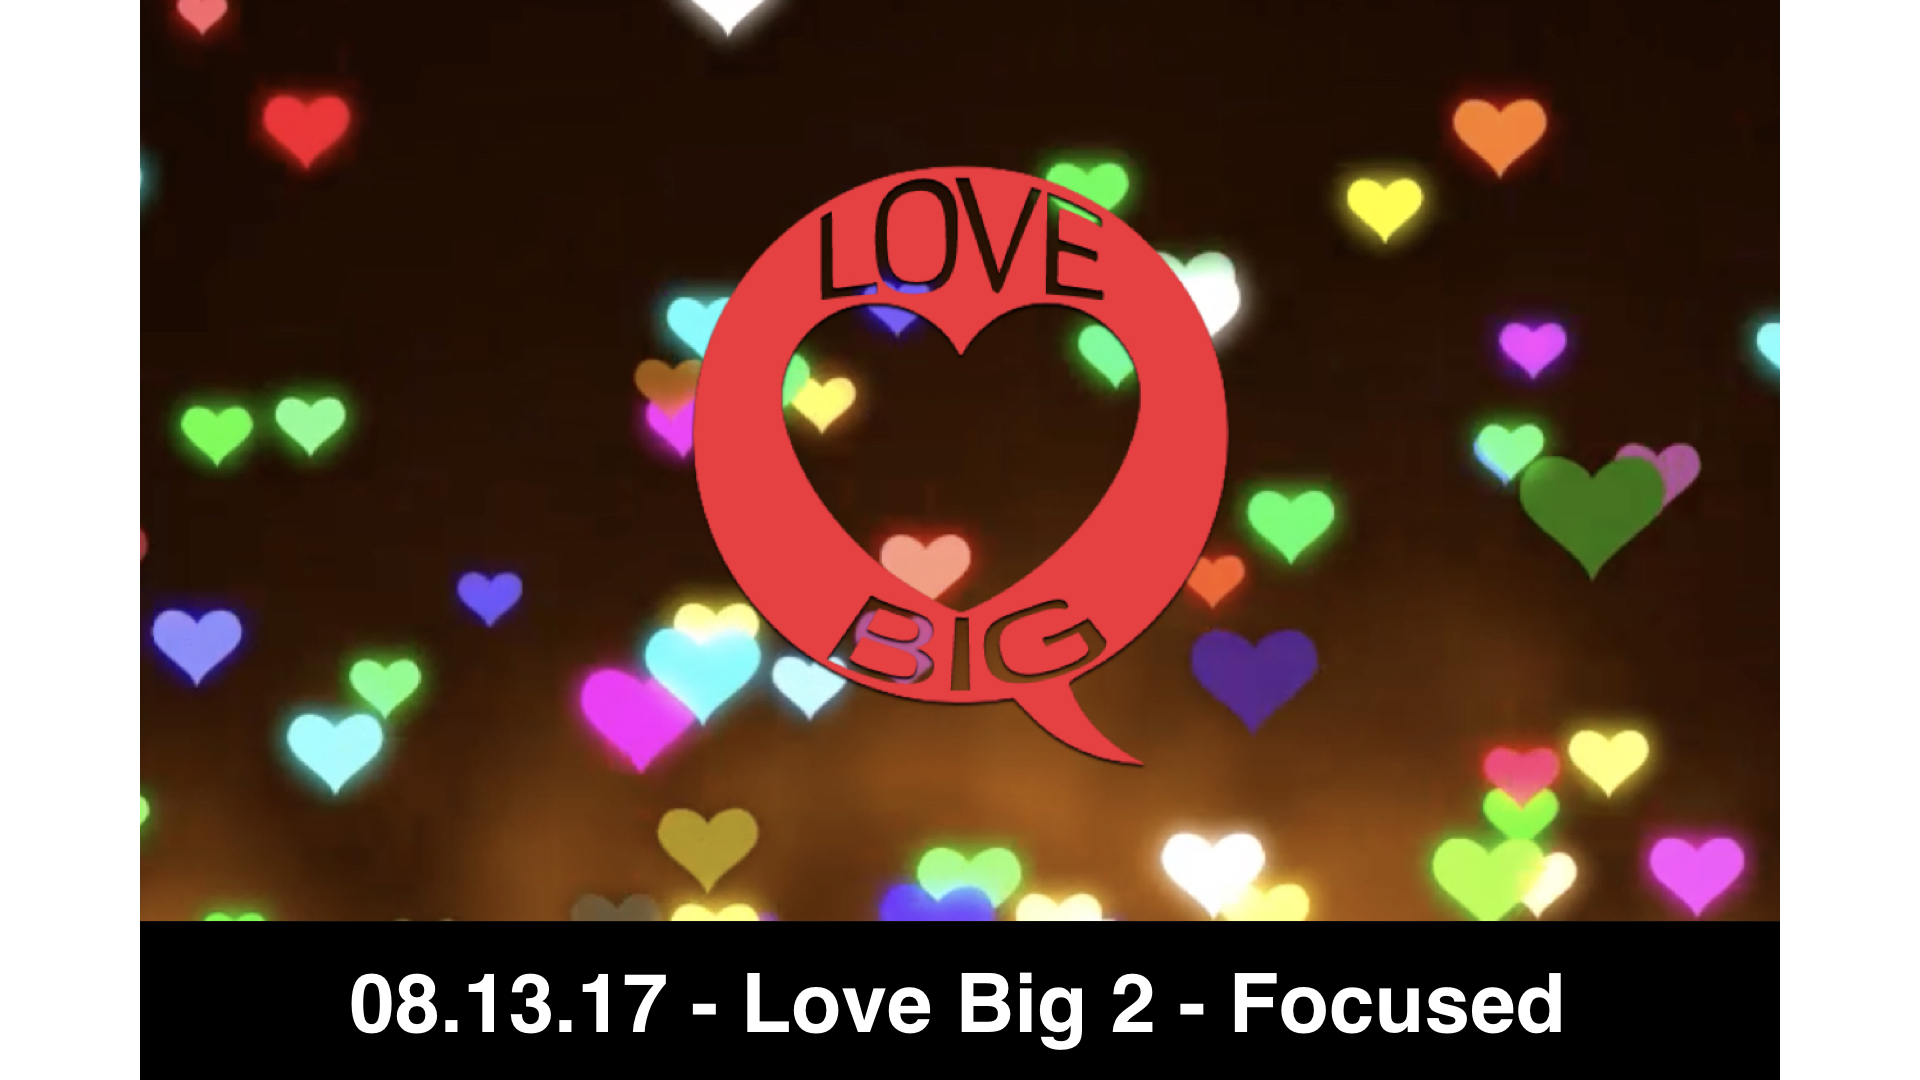 08.13.17 Love Big 2 - Focused